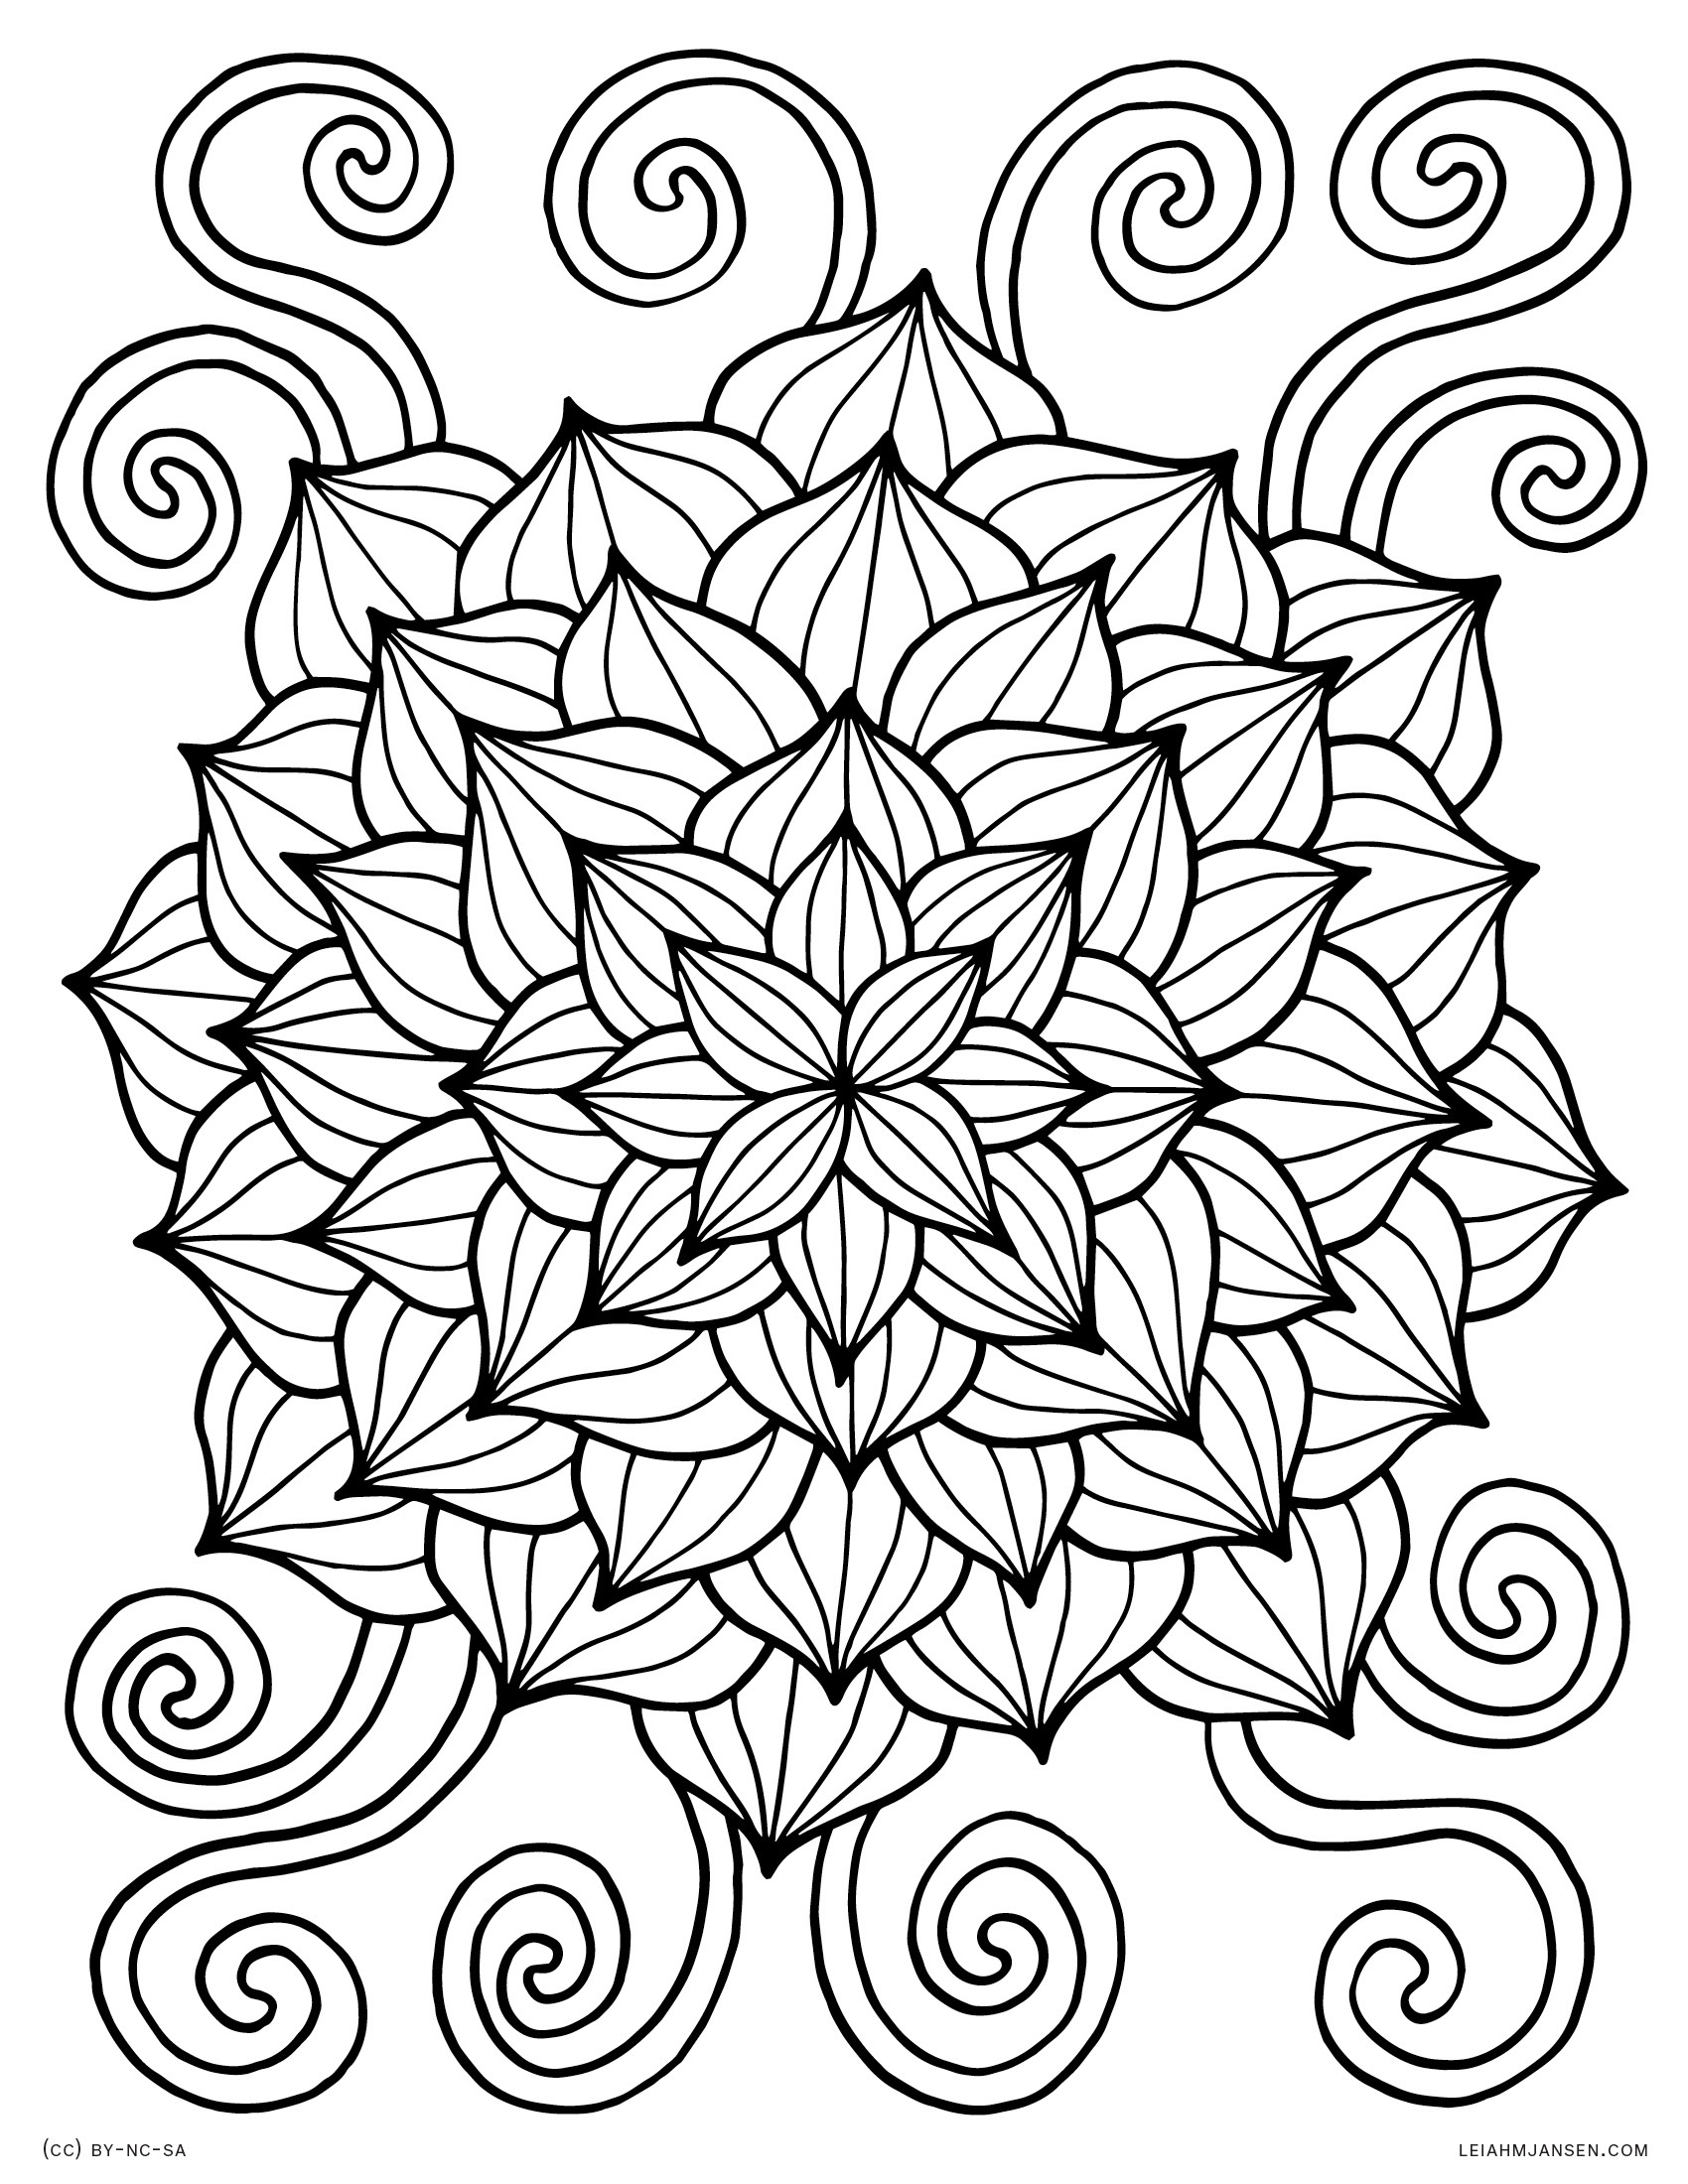 Coloring Pages - Free Printable Coloring Pages For Adults